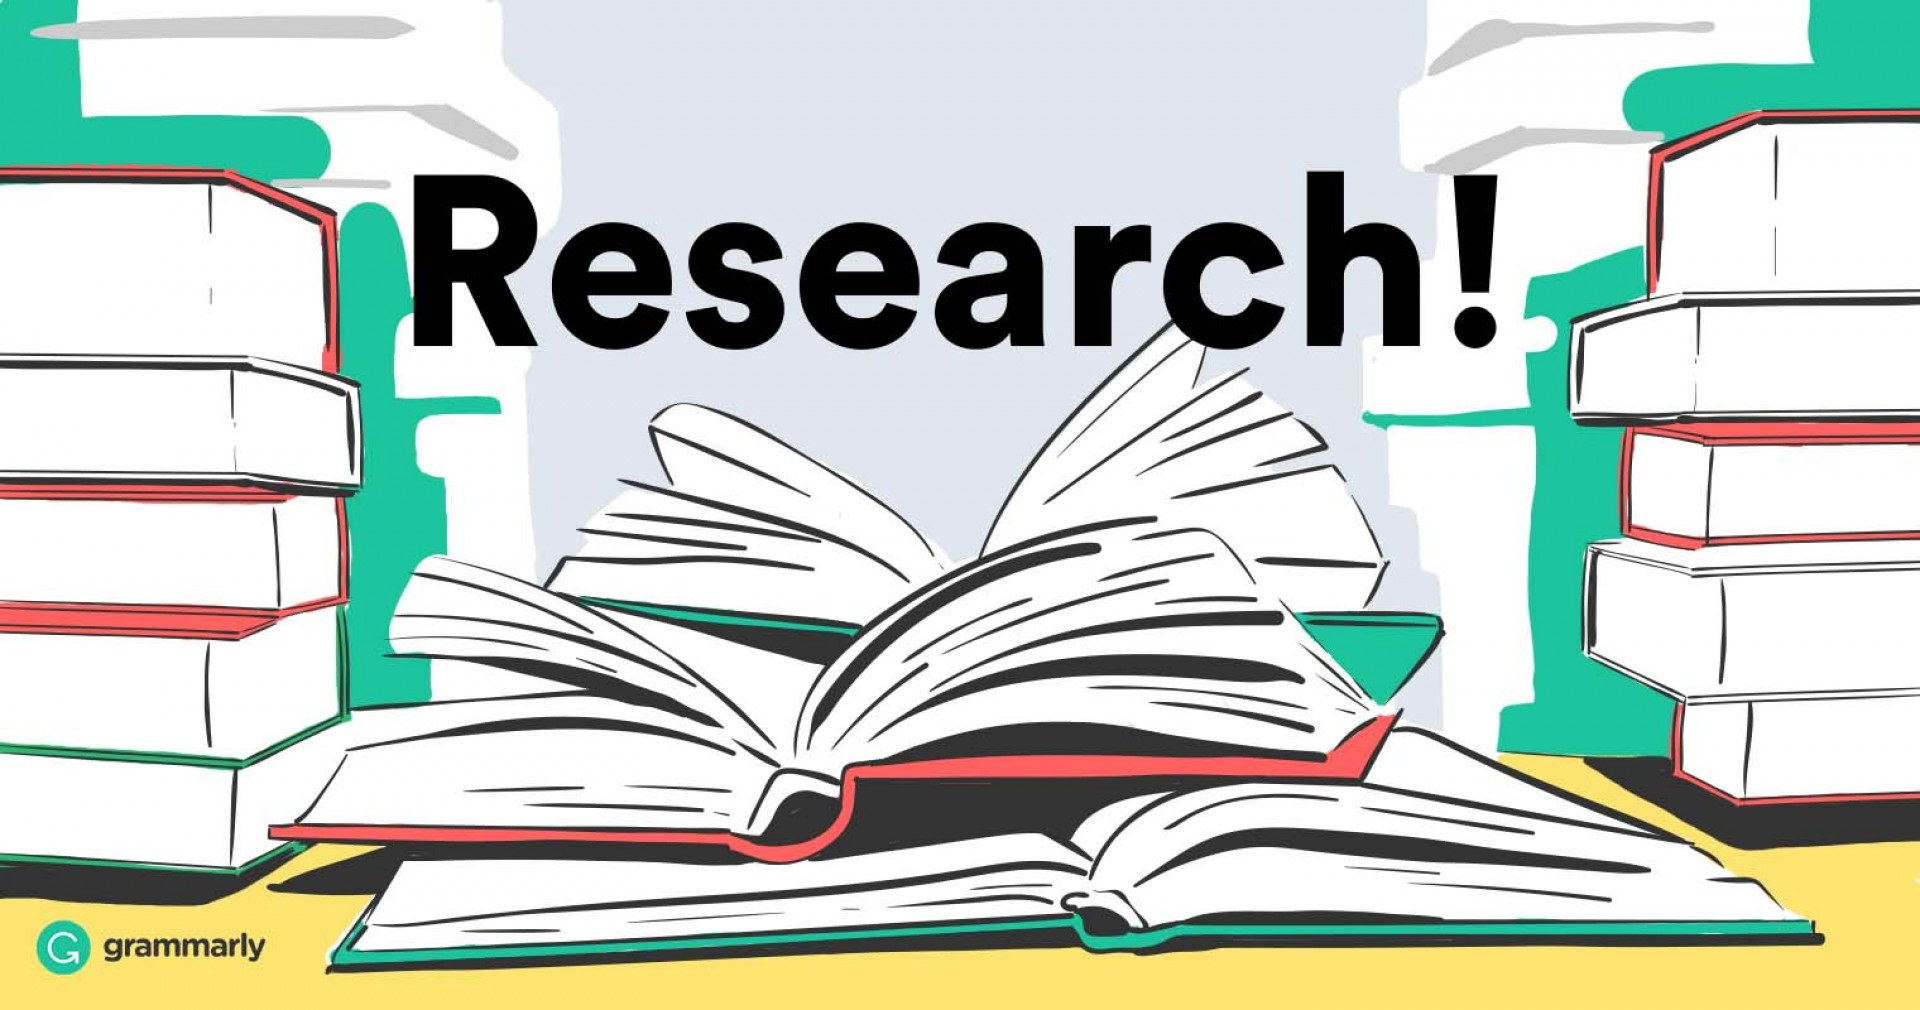 004 Research Paper Steps Frightening Writing 12 Ten For Papers To A 10 Page 1920